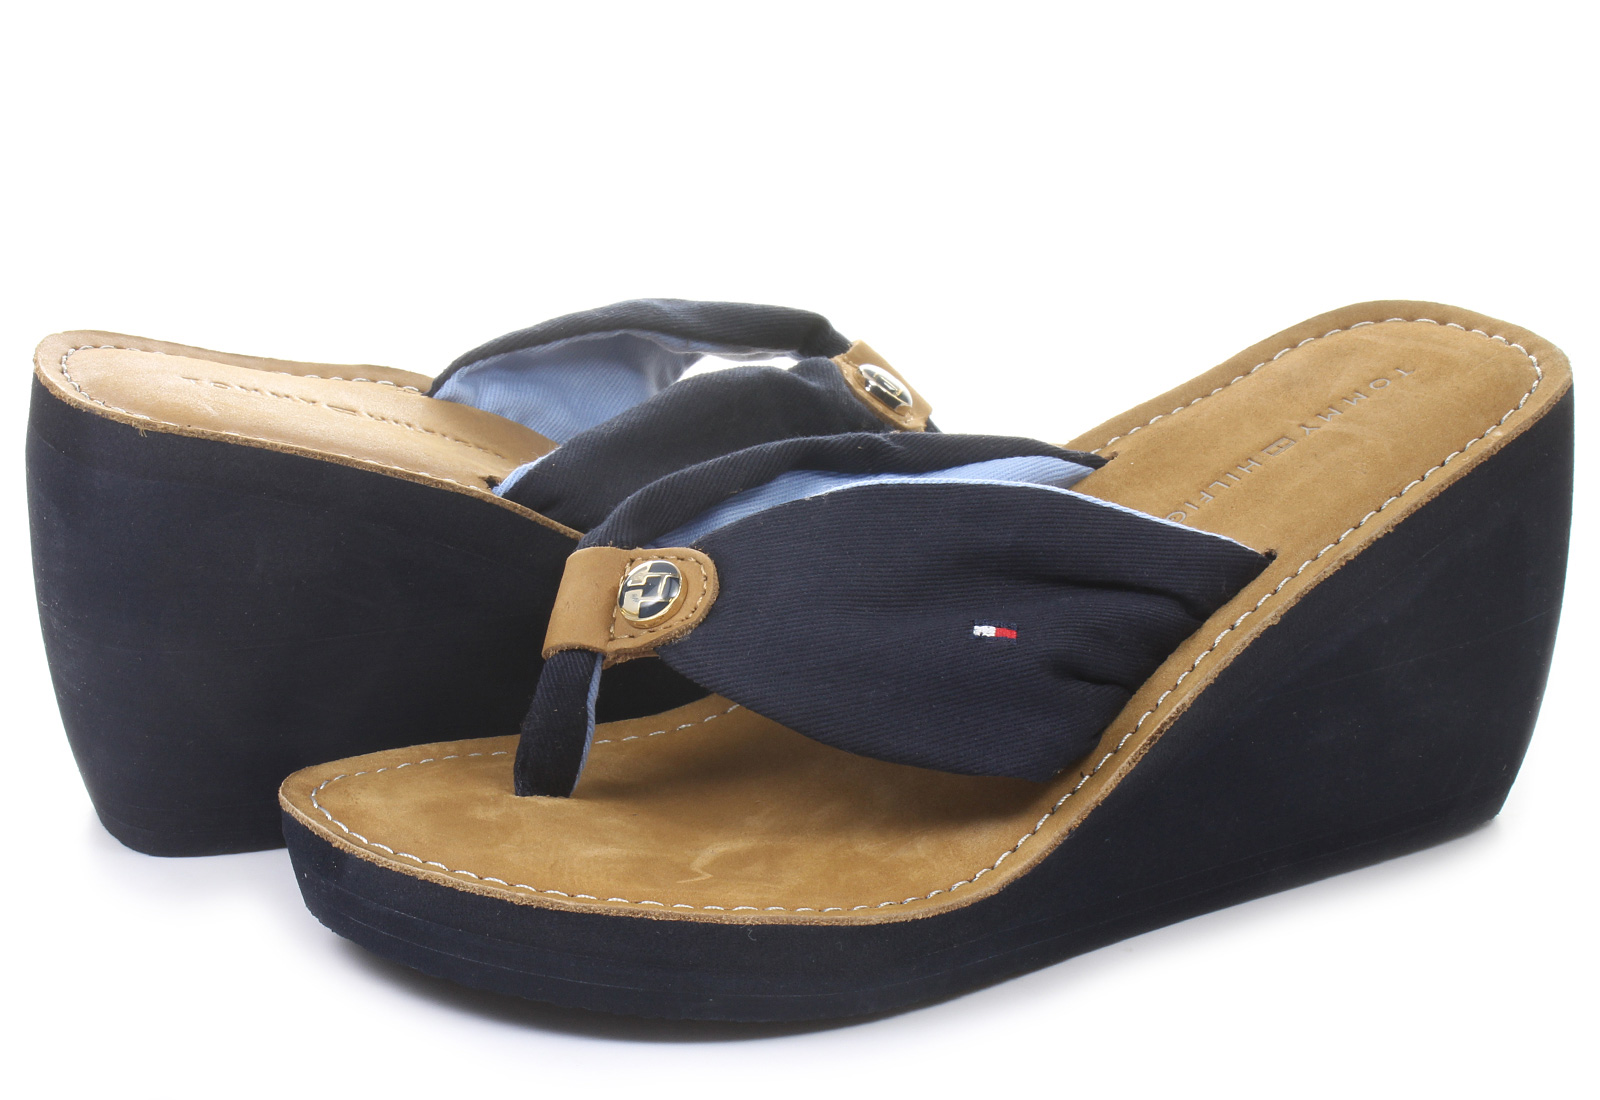 fa4f8e7fd8ec88 Tommy Hilfiger Slippers - Myriam 9c - 14S-6810-403 - Office Shoes ...